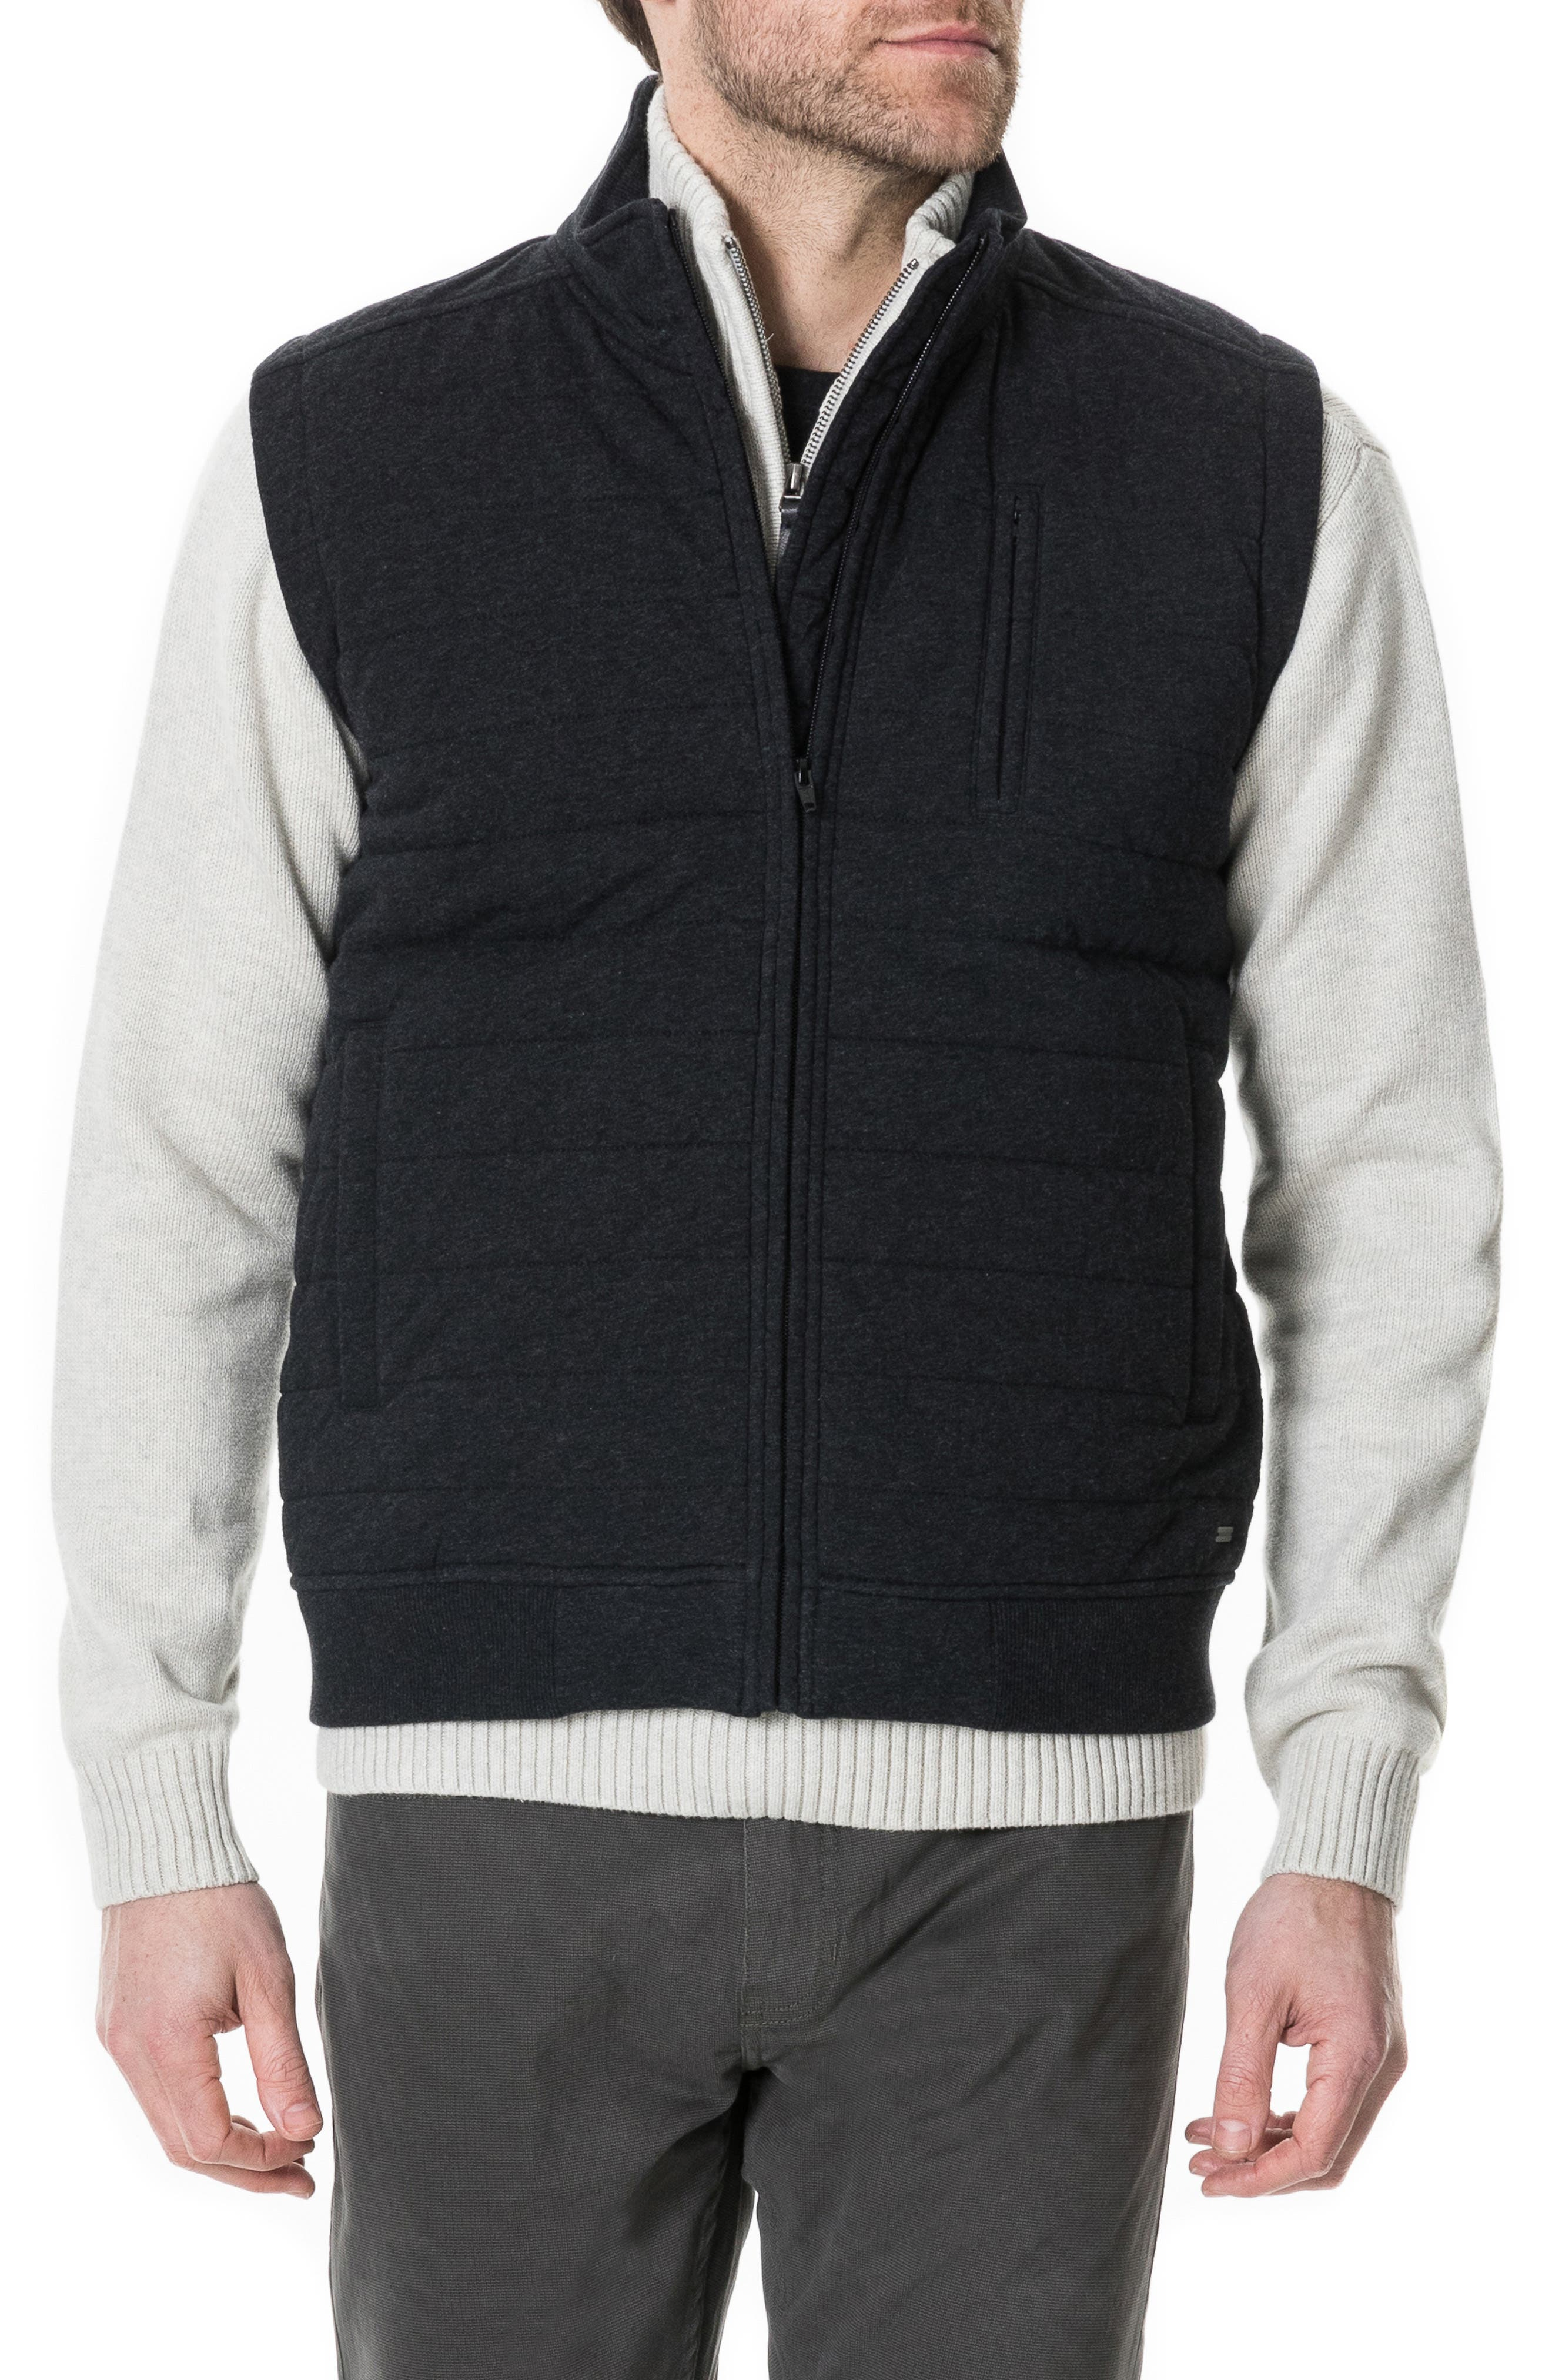 Gould Road Quilted Cotton Flannel Vest,                             Main thumbnail 1, color,                             020